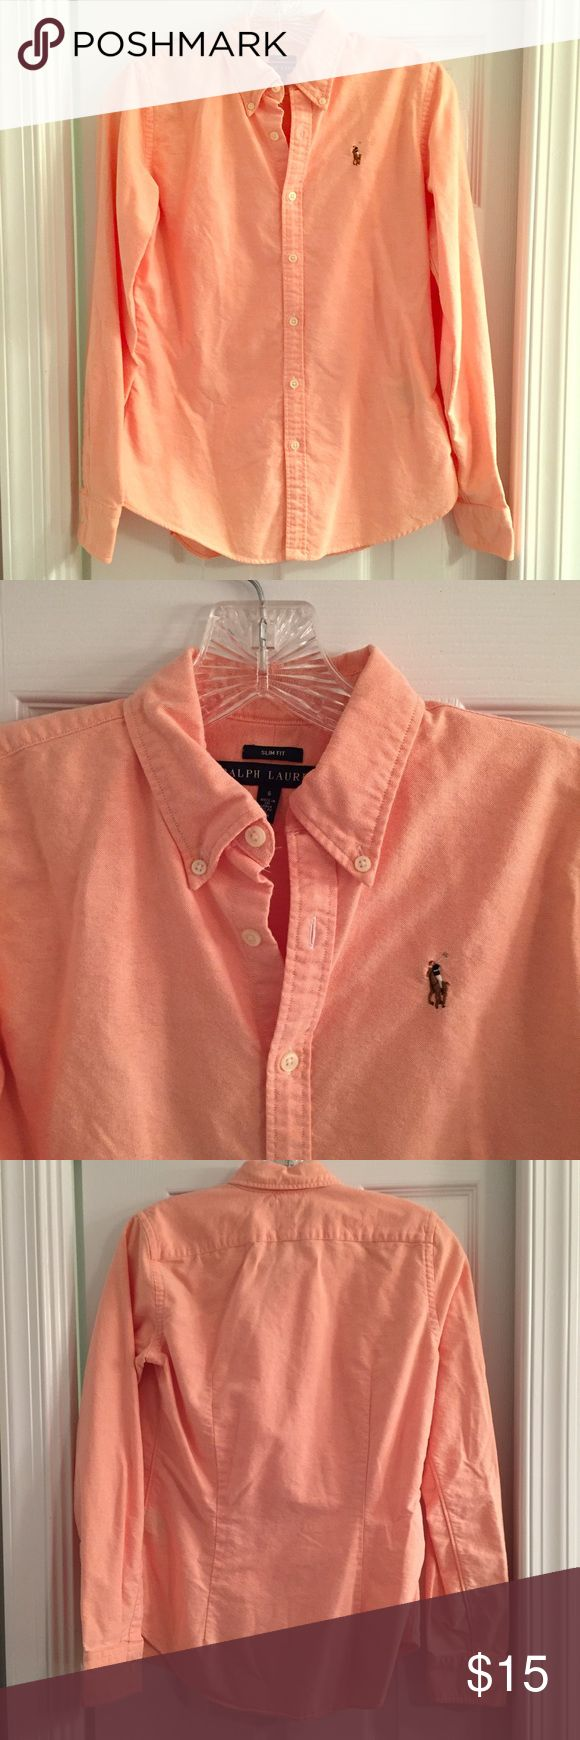 Ralph Lauren Cotton Oxford Slim Fit, Women's 6 Pale orange long-sleeve cotton oxford shirt by Ralph Lauren. Slim-fit size 6. Machine washable. In great condition - no stains or missing buttons. Great for work. Ralph Lauren Tops Button Down Shirts